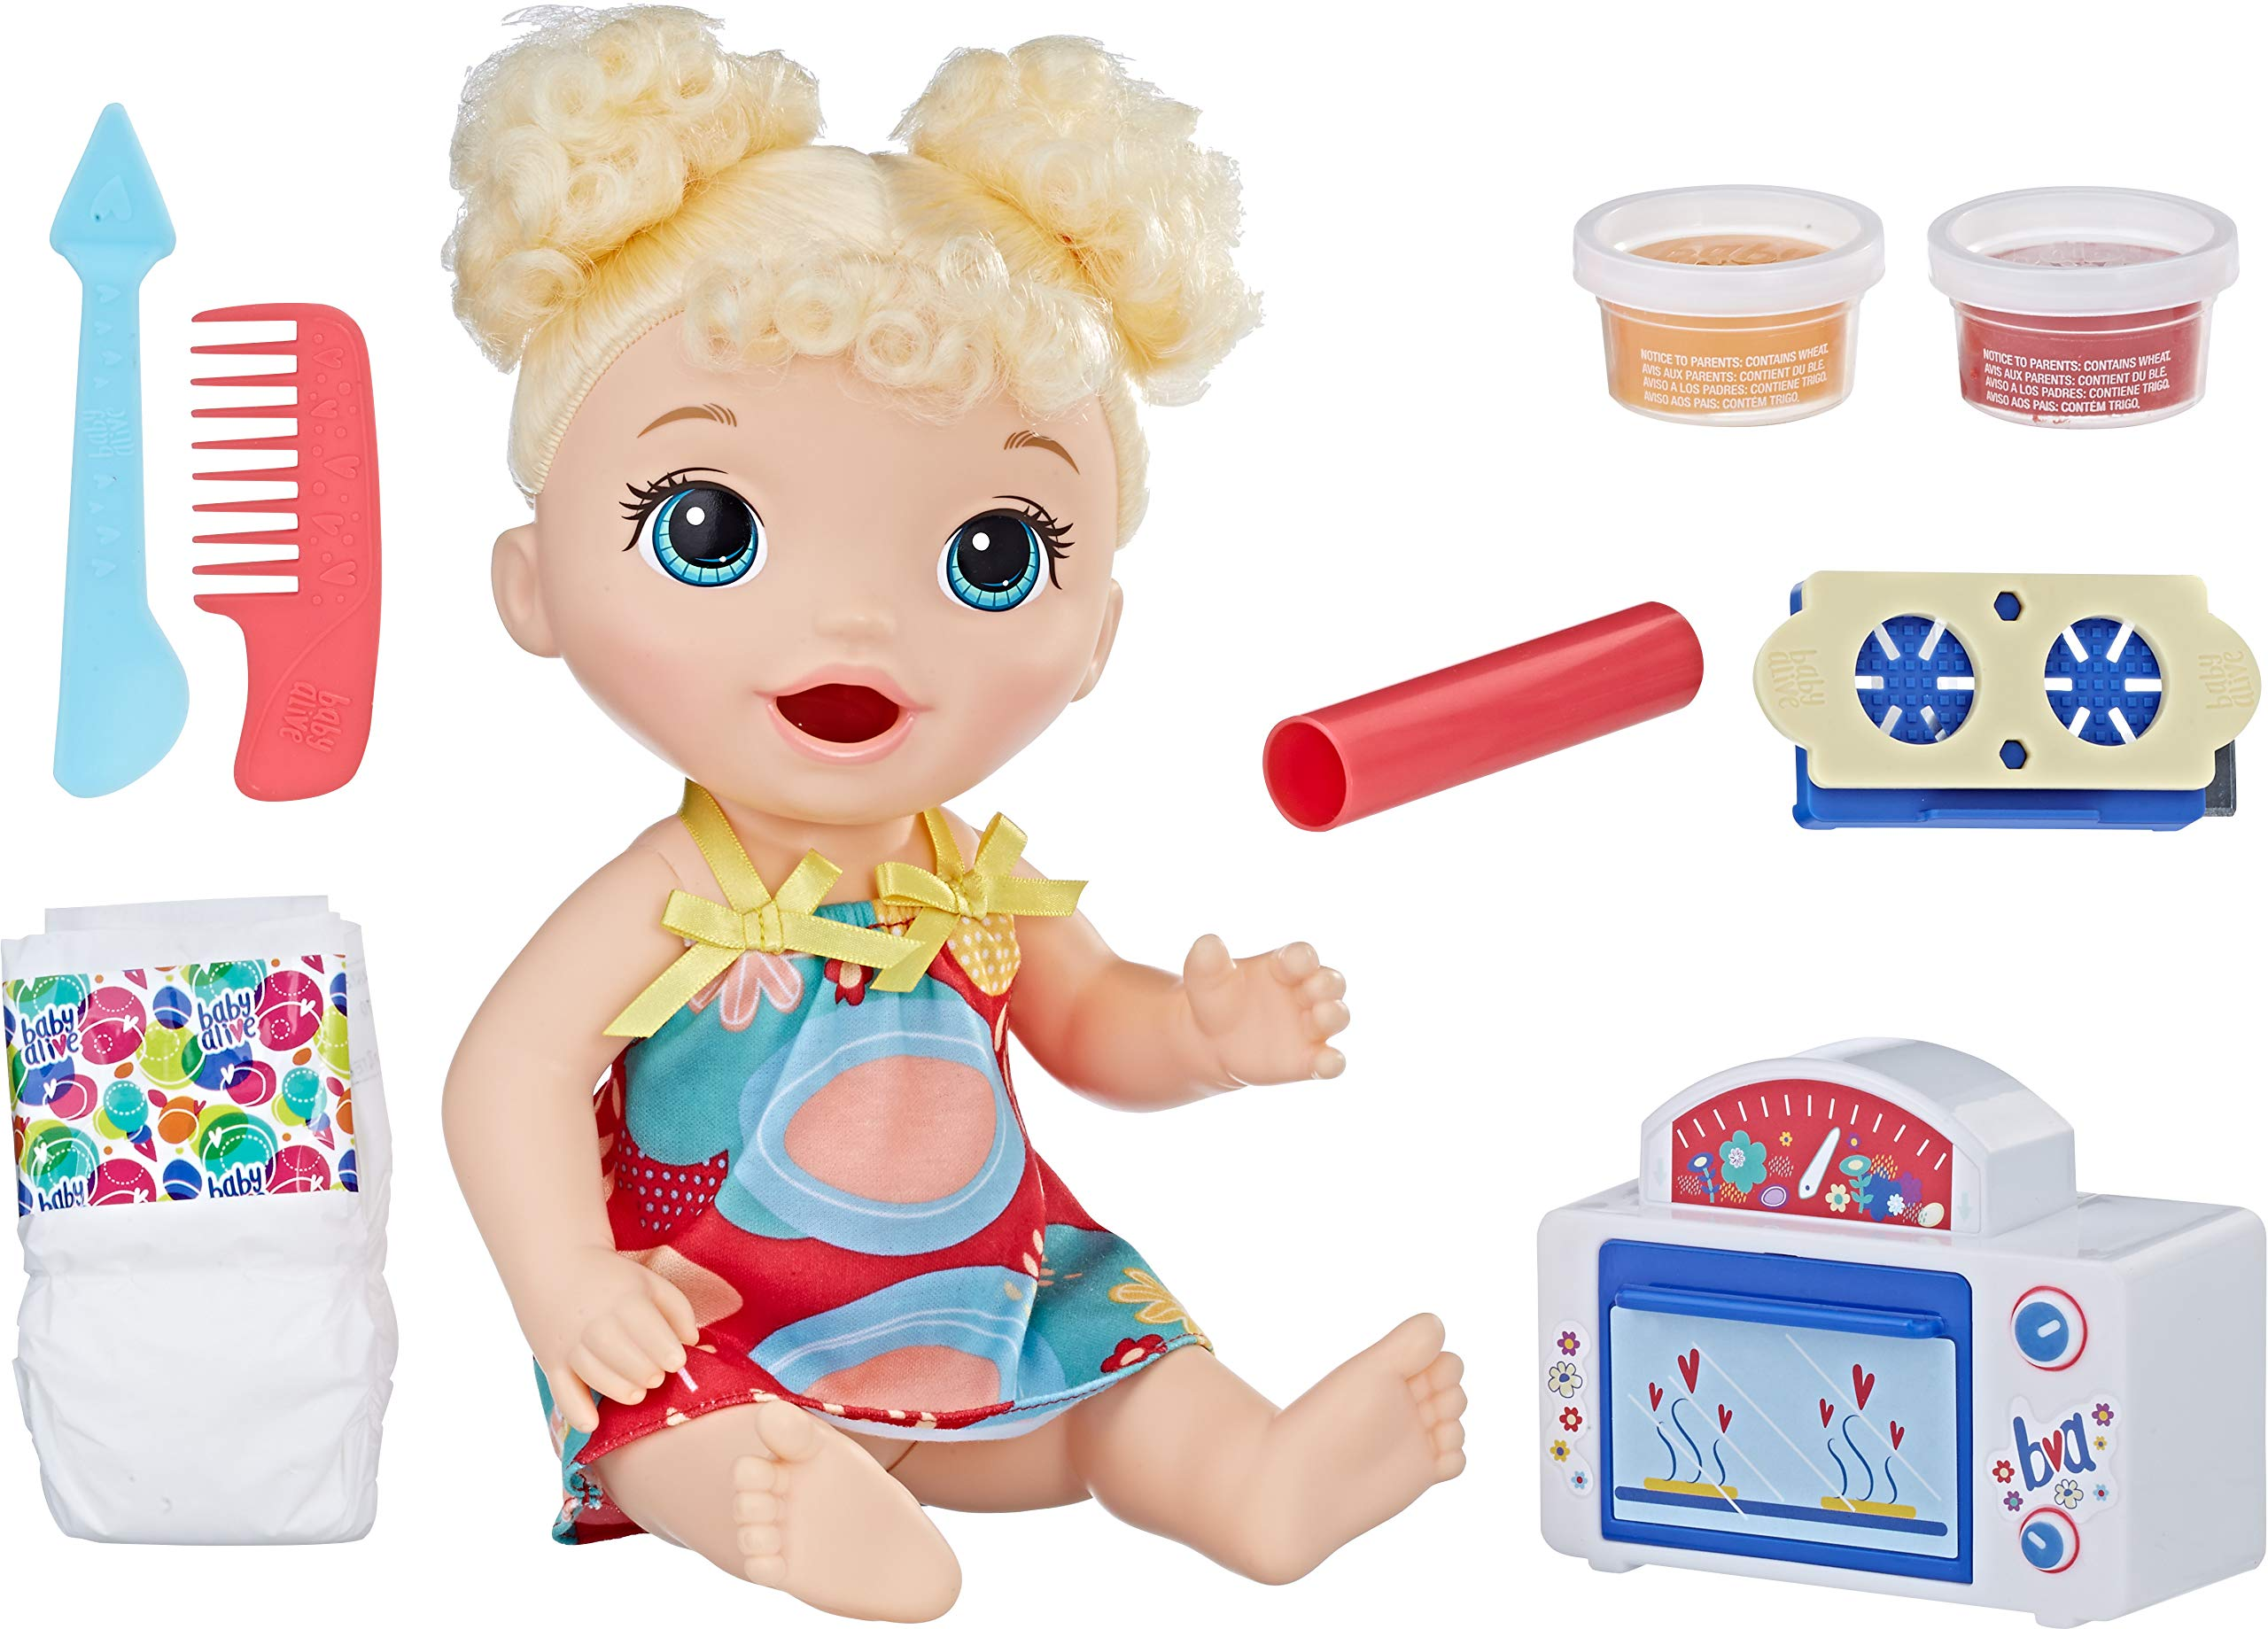 Baby Alive Snackin' Treats Baby, Blonde Curly Hair, for Girls and Boys 3 Years Old and Up (B076QVP3RM) Amazon Price History, Amazon Price Tracker